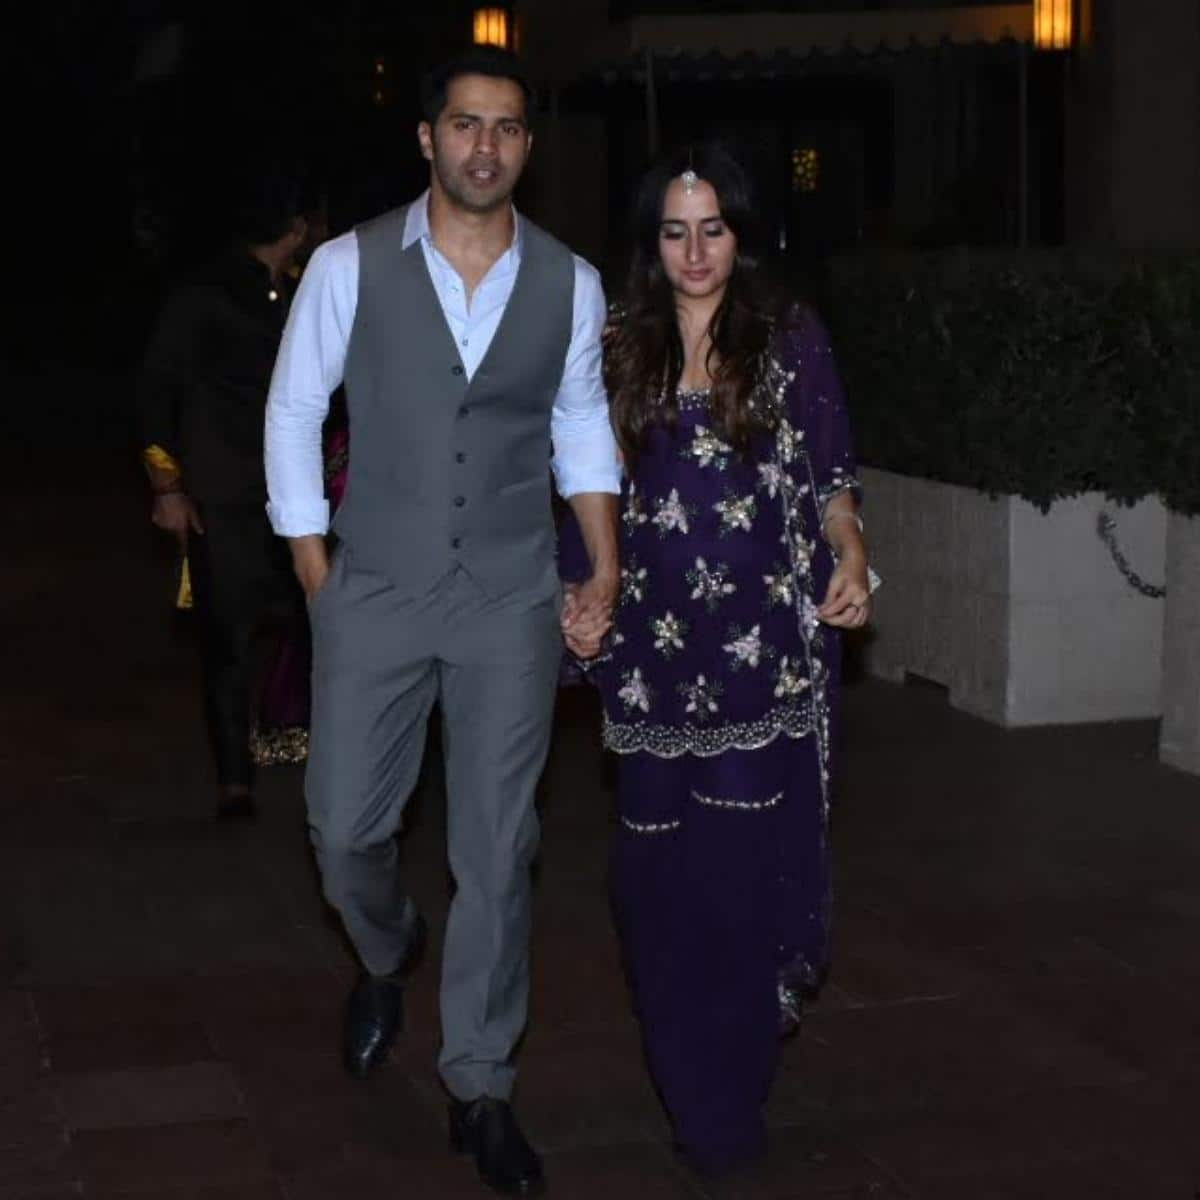 Varun Dhawan, Natasha Dalal's Wedding Has A Strict 'No Phones Policy', Guests Asked To Get Tested For Covid-19: Reports